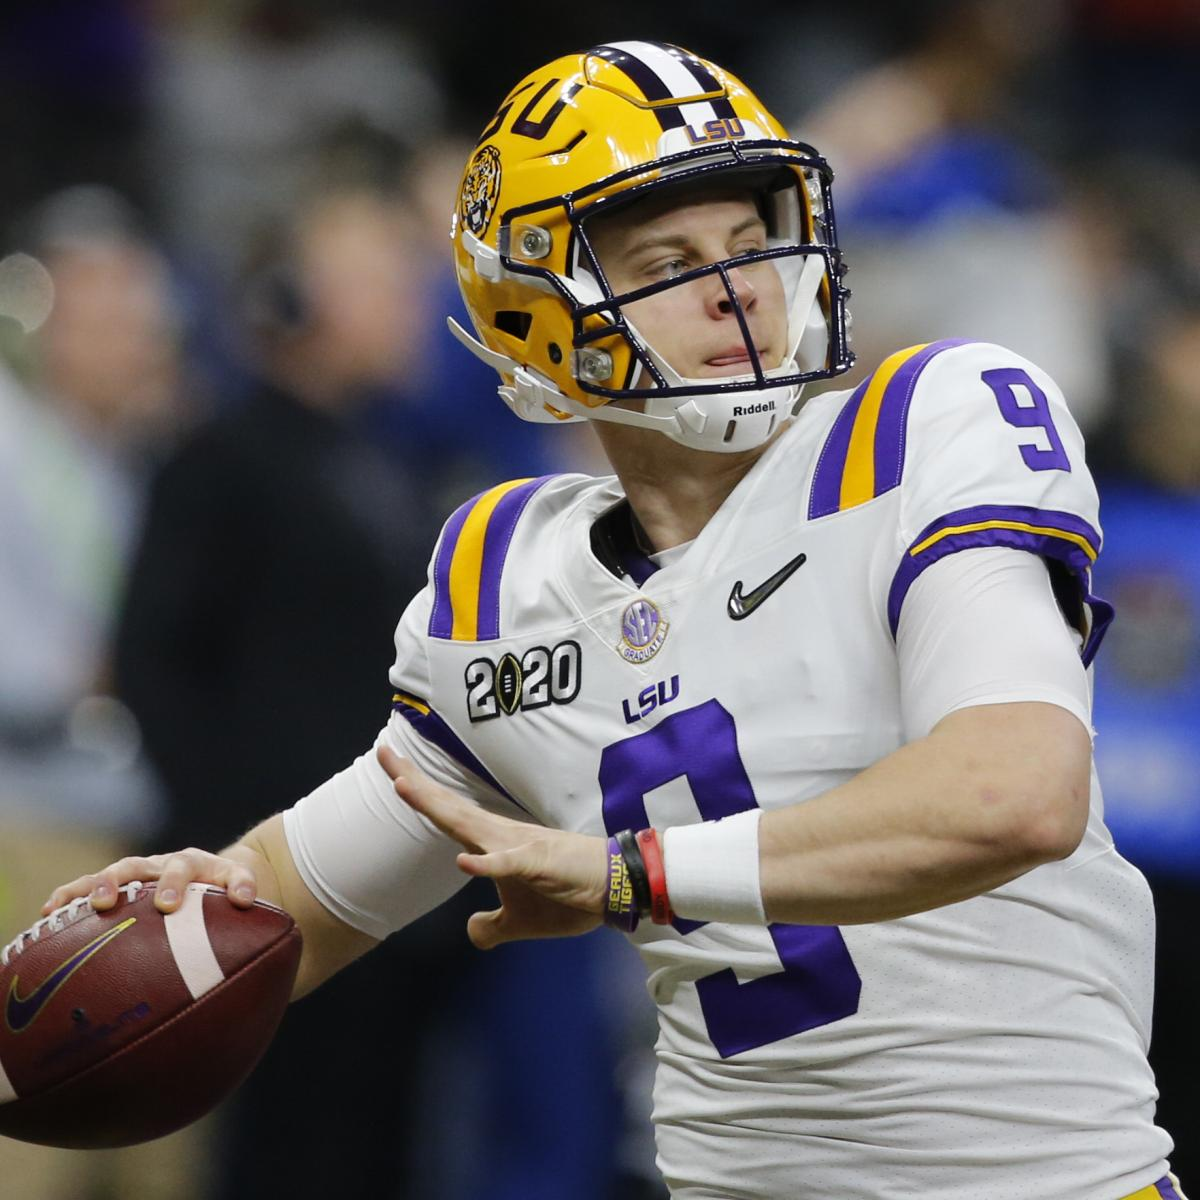 Joe Burrow 'Probably' a 3rd- or 4th-Round Pick 1 Year Ago, Says Anonymous Exec